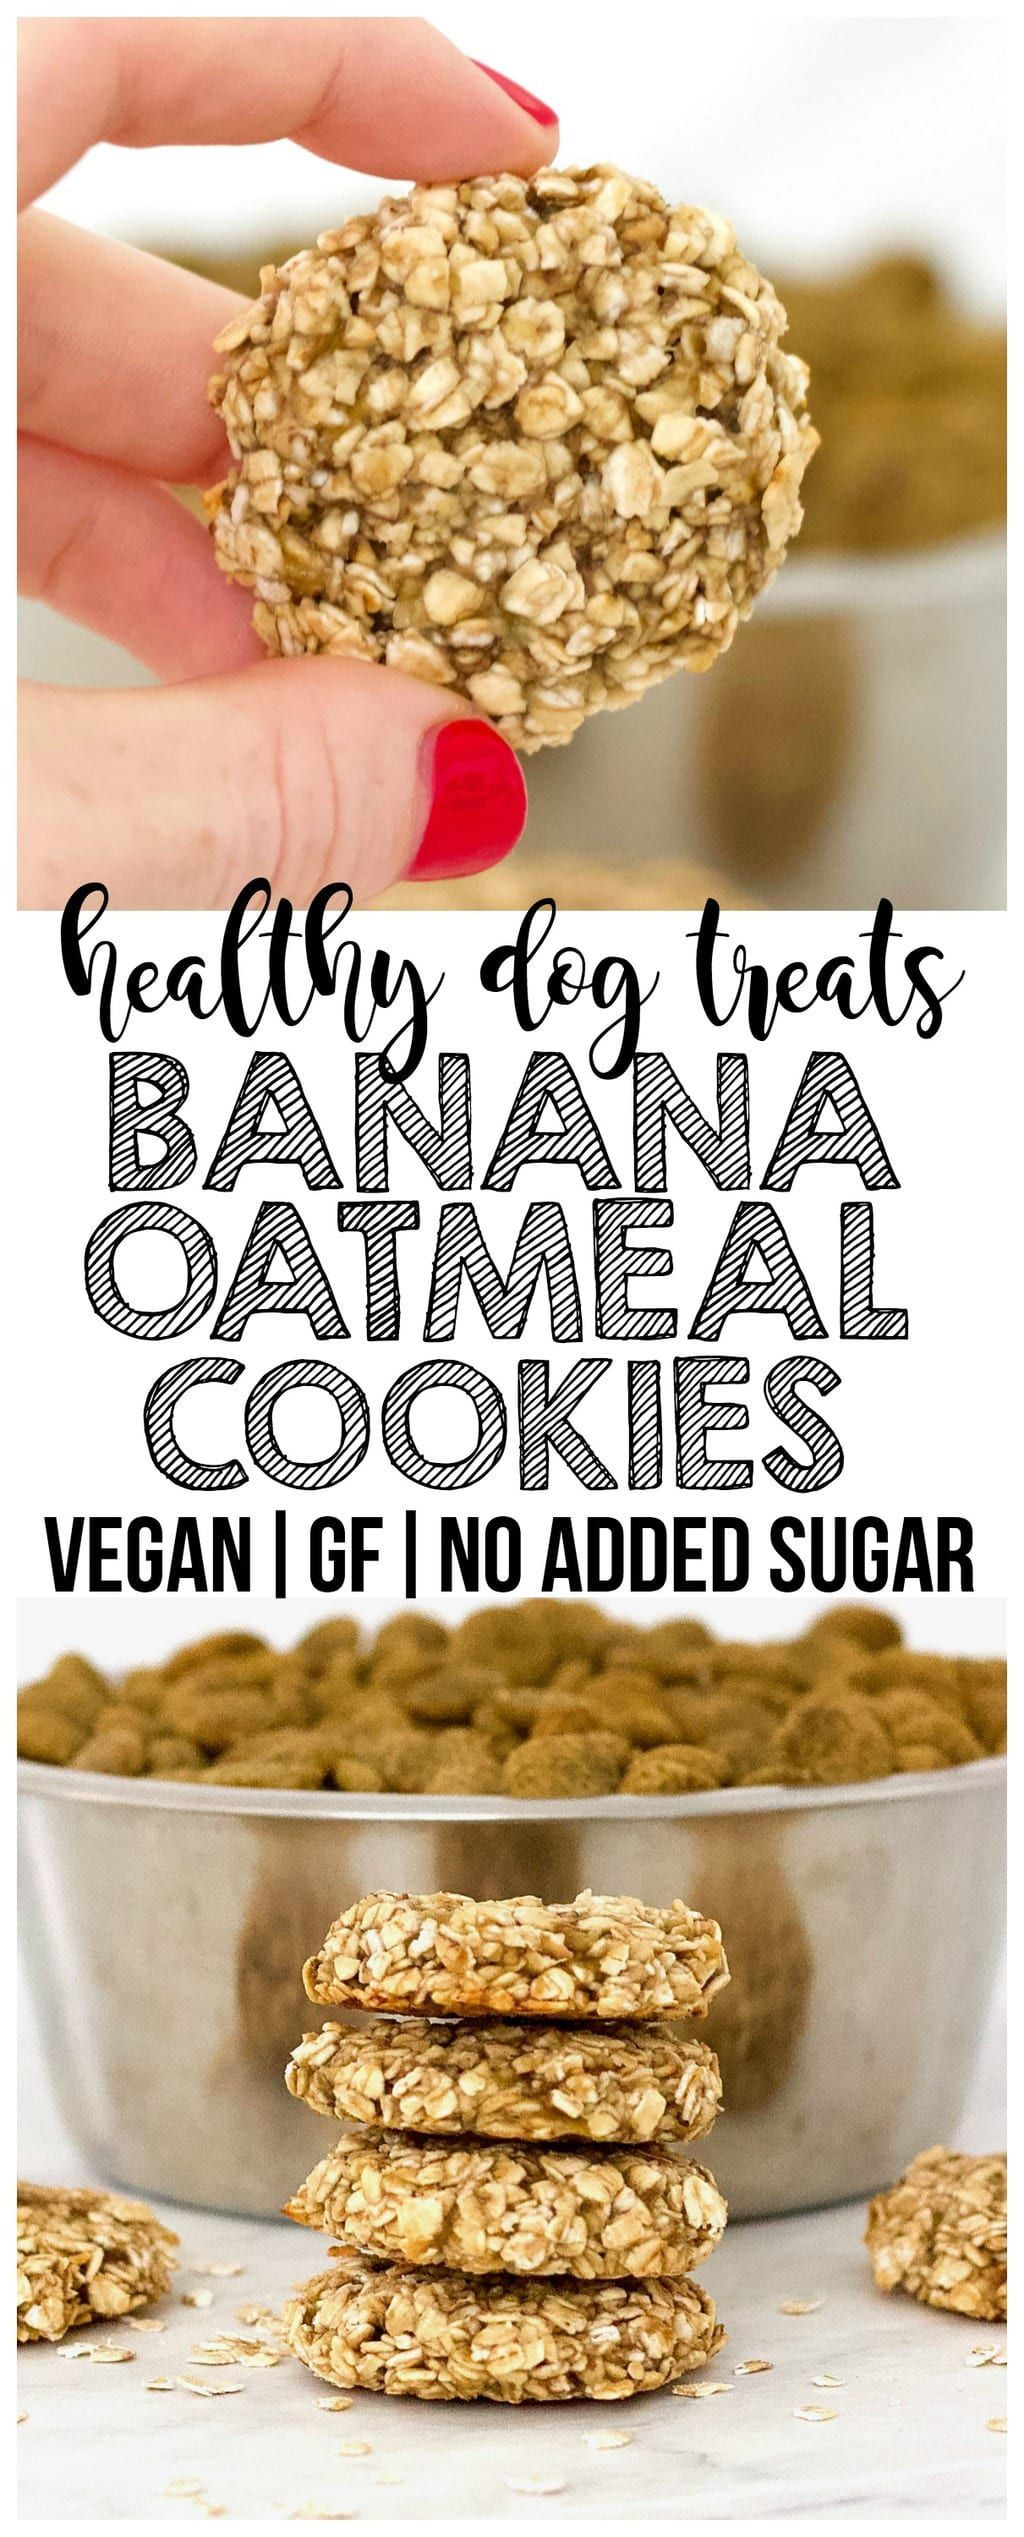 Banana Oatmeal Cookies For Dogs Dog Biscuit Recipes Banana